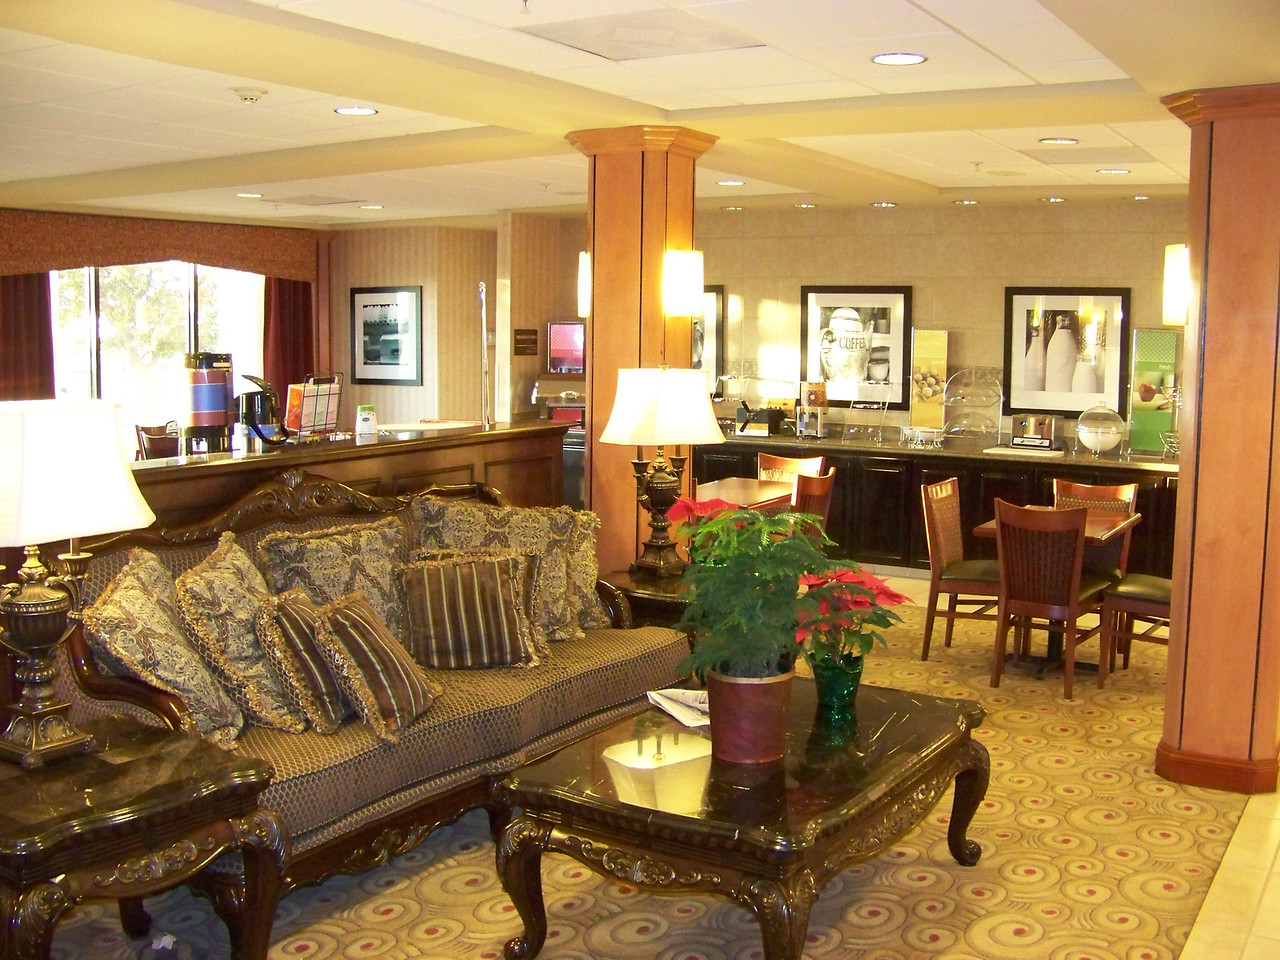 The nice lobby at the Hampton Inn in Eagle Pass.  Behind the couch was a self-serve beverage station that was open all day.  On the back wall is the bar where they set up the free breakfast buffet.